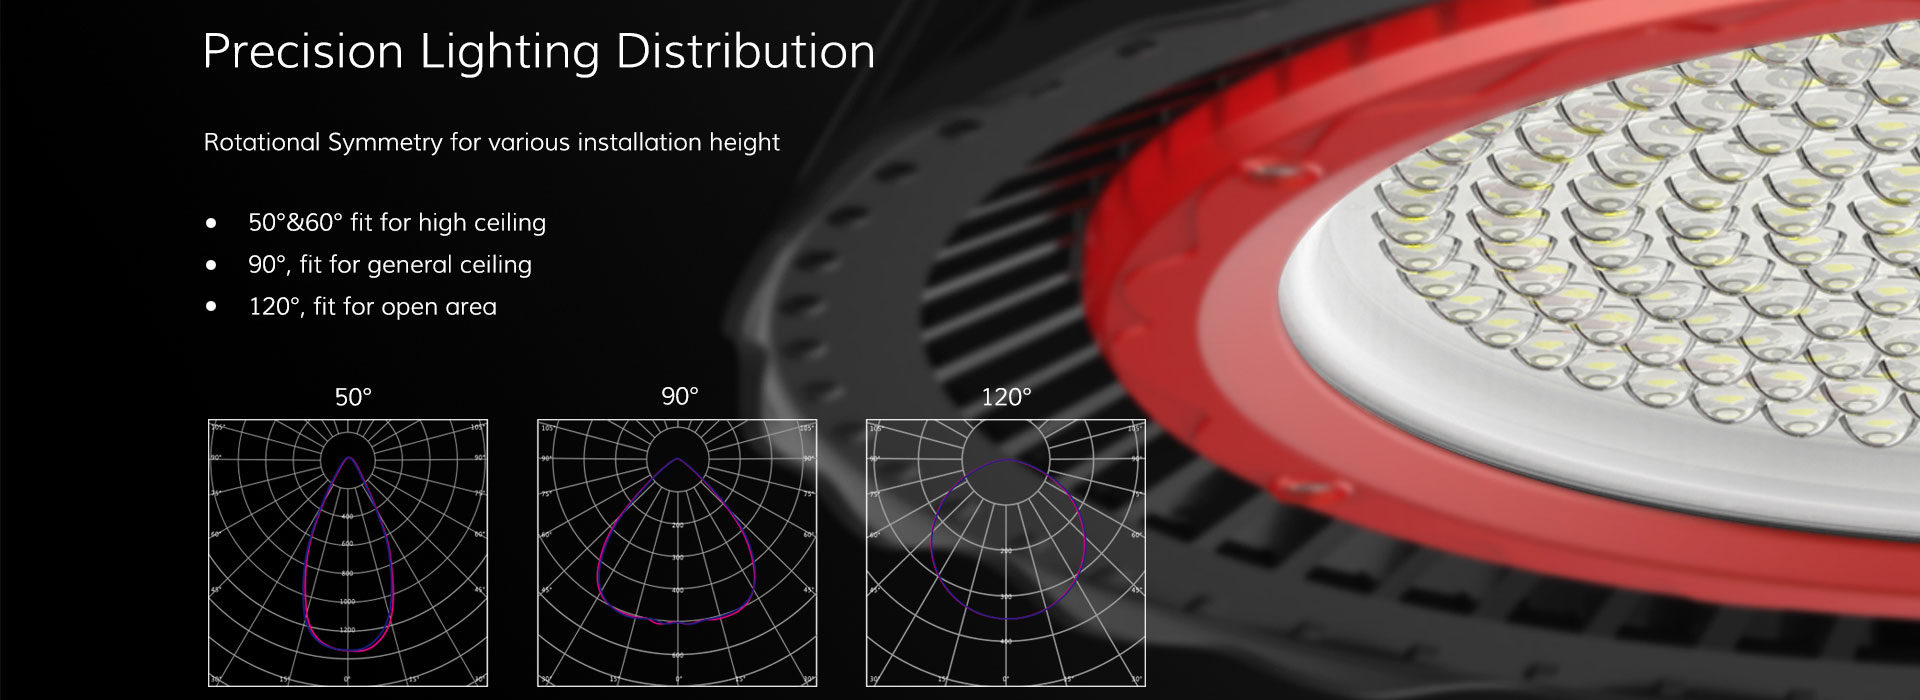 HiCloud-Precision-Lighting-Distribution